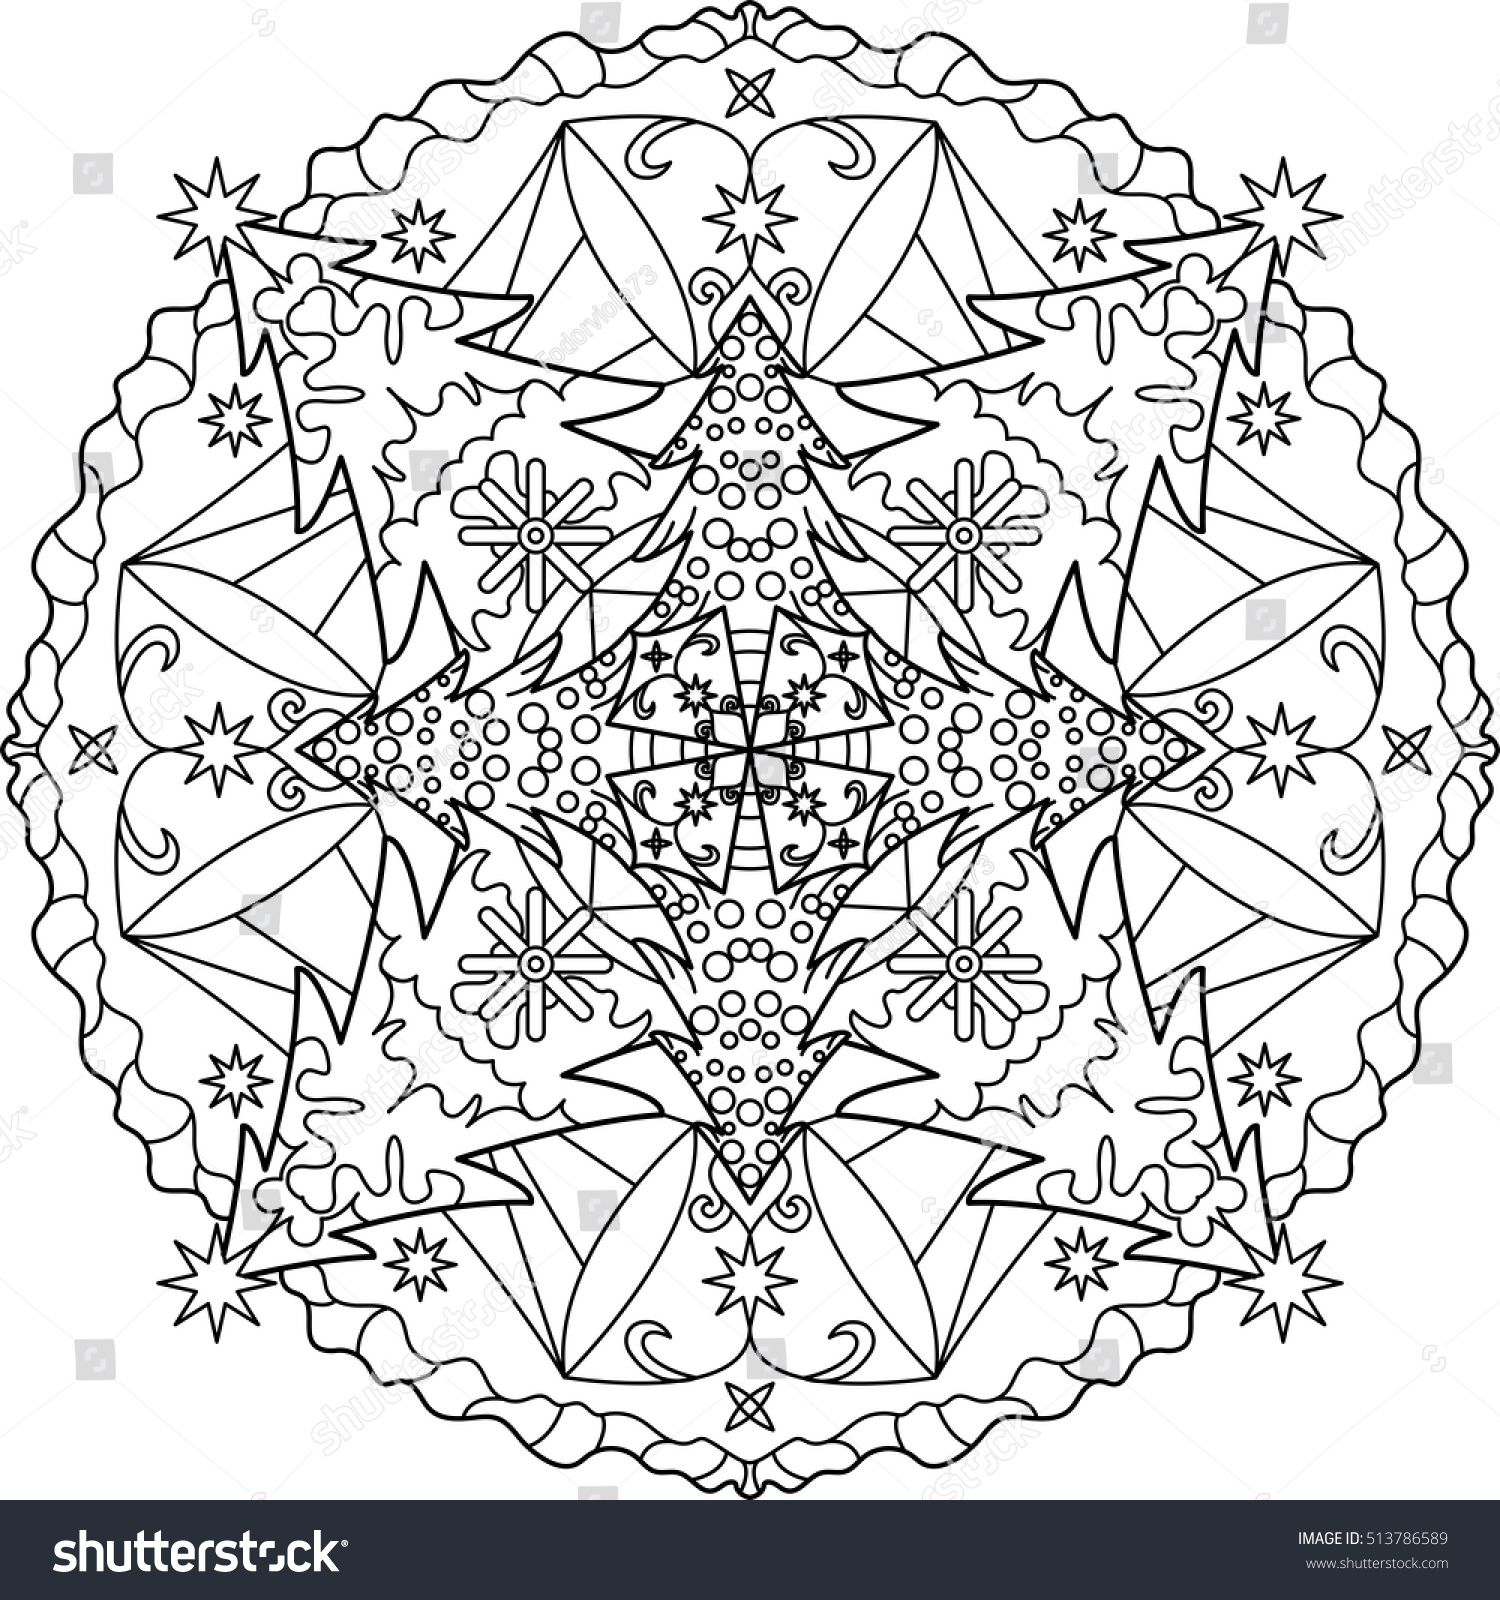 Christmas Mandalas Coloring Book With Mandala Adult Outline Stock Vector Royalty